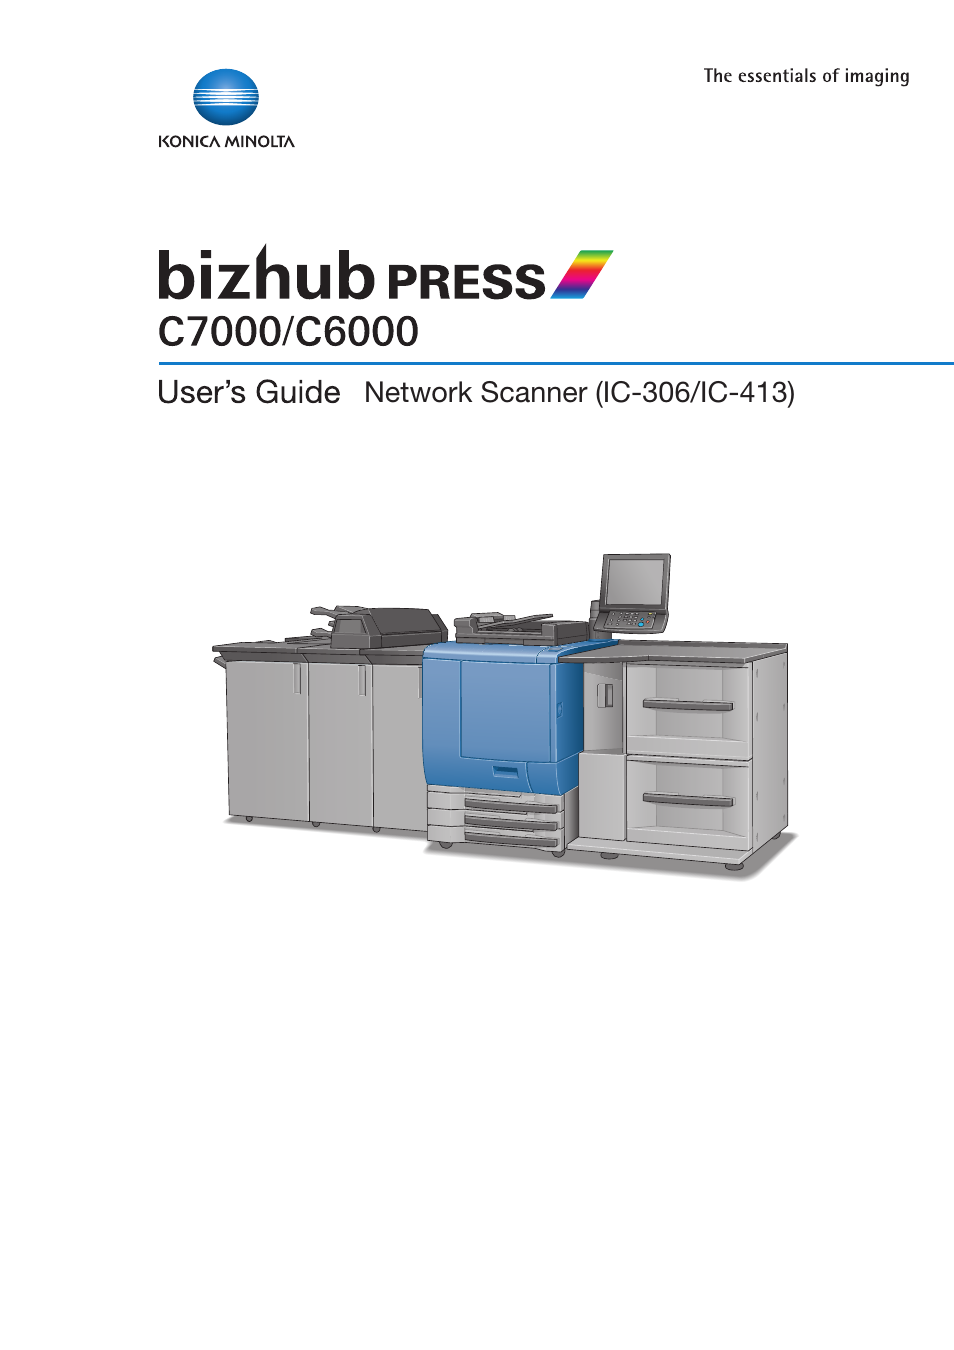 konica minolta ic 413 user manual 106 pages also for bizhub pro rh manualsdir com bizhub c368 user guide bizhub c458 user guide